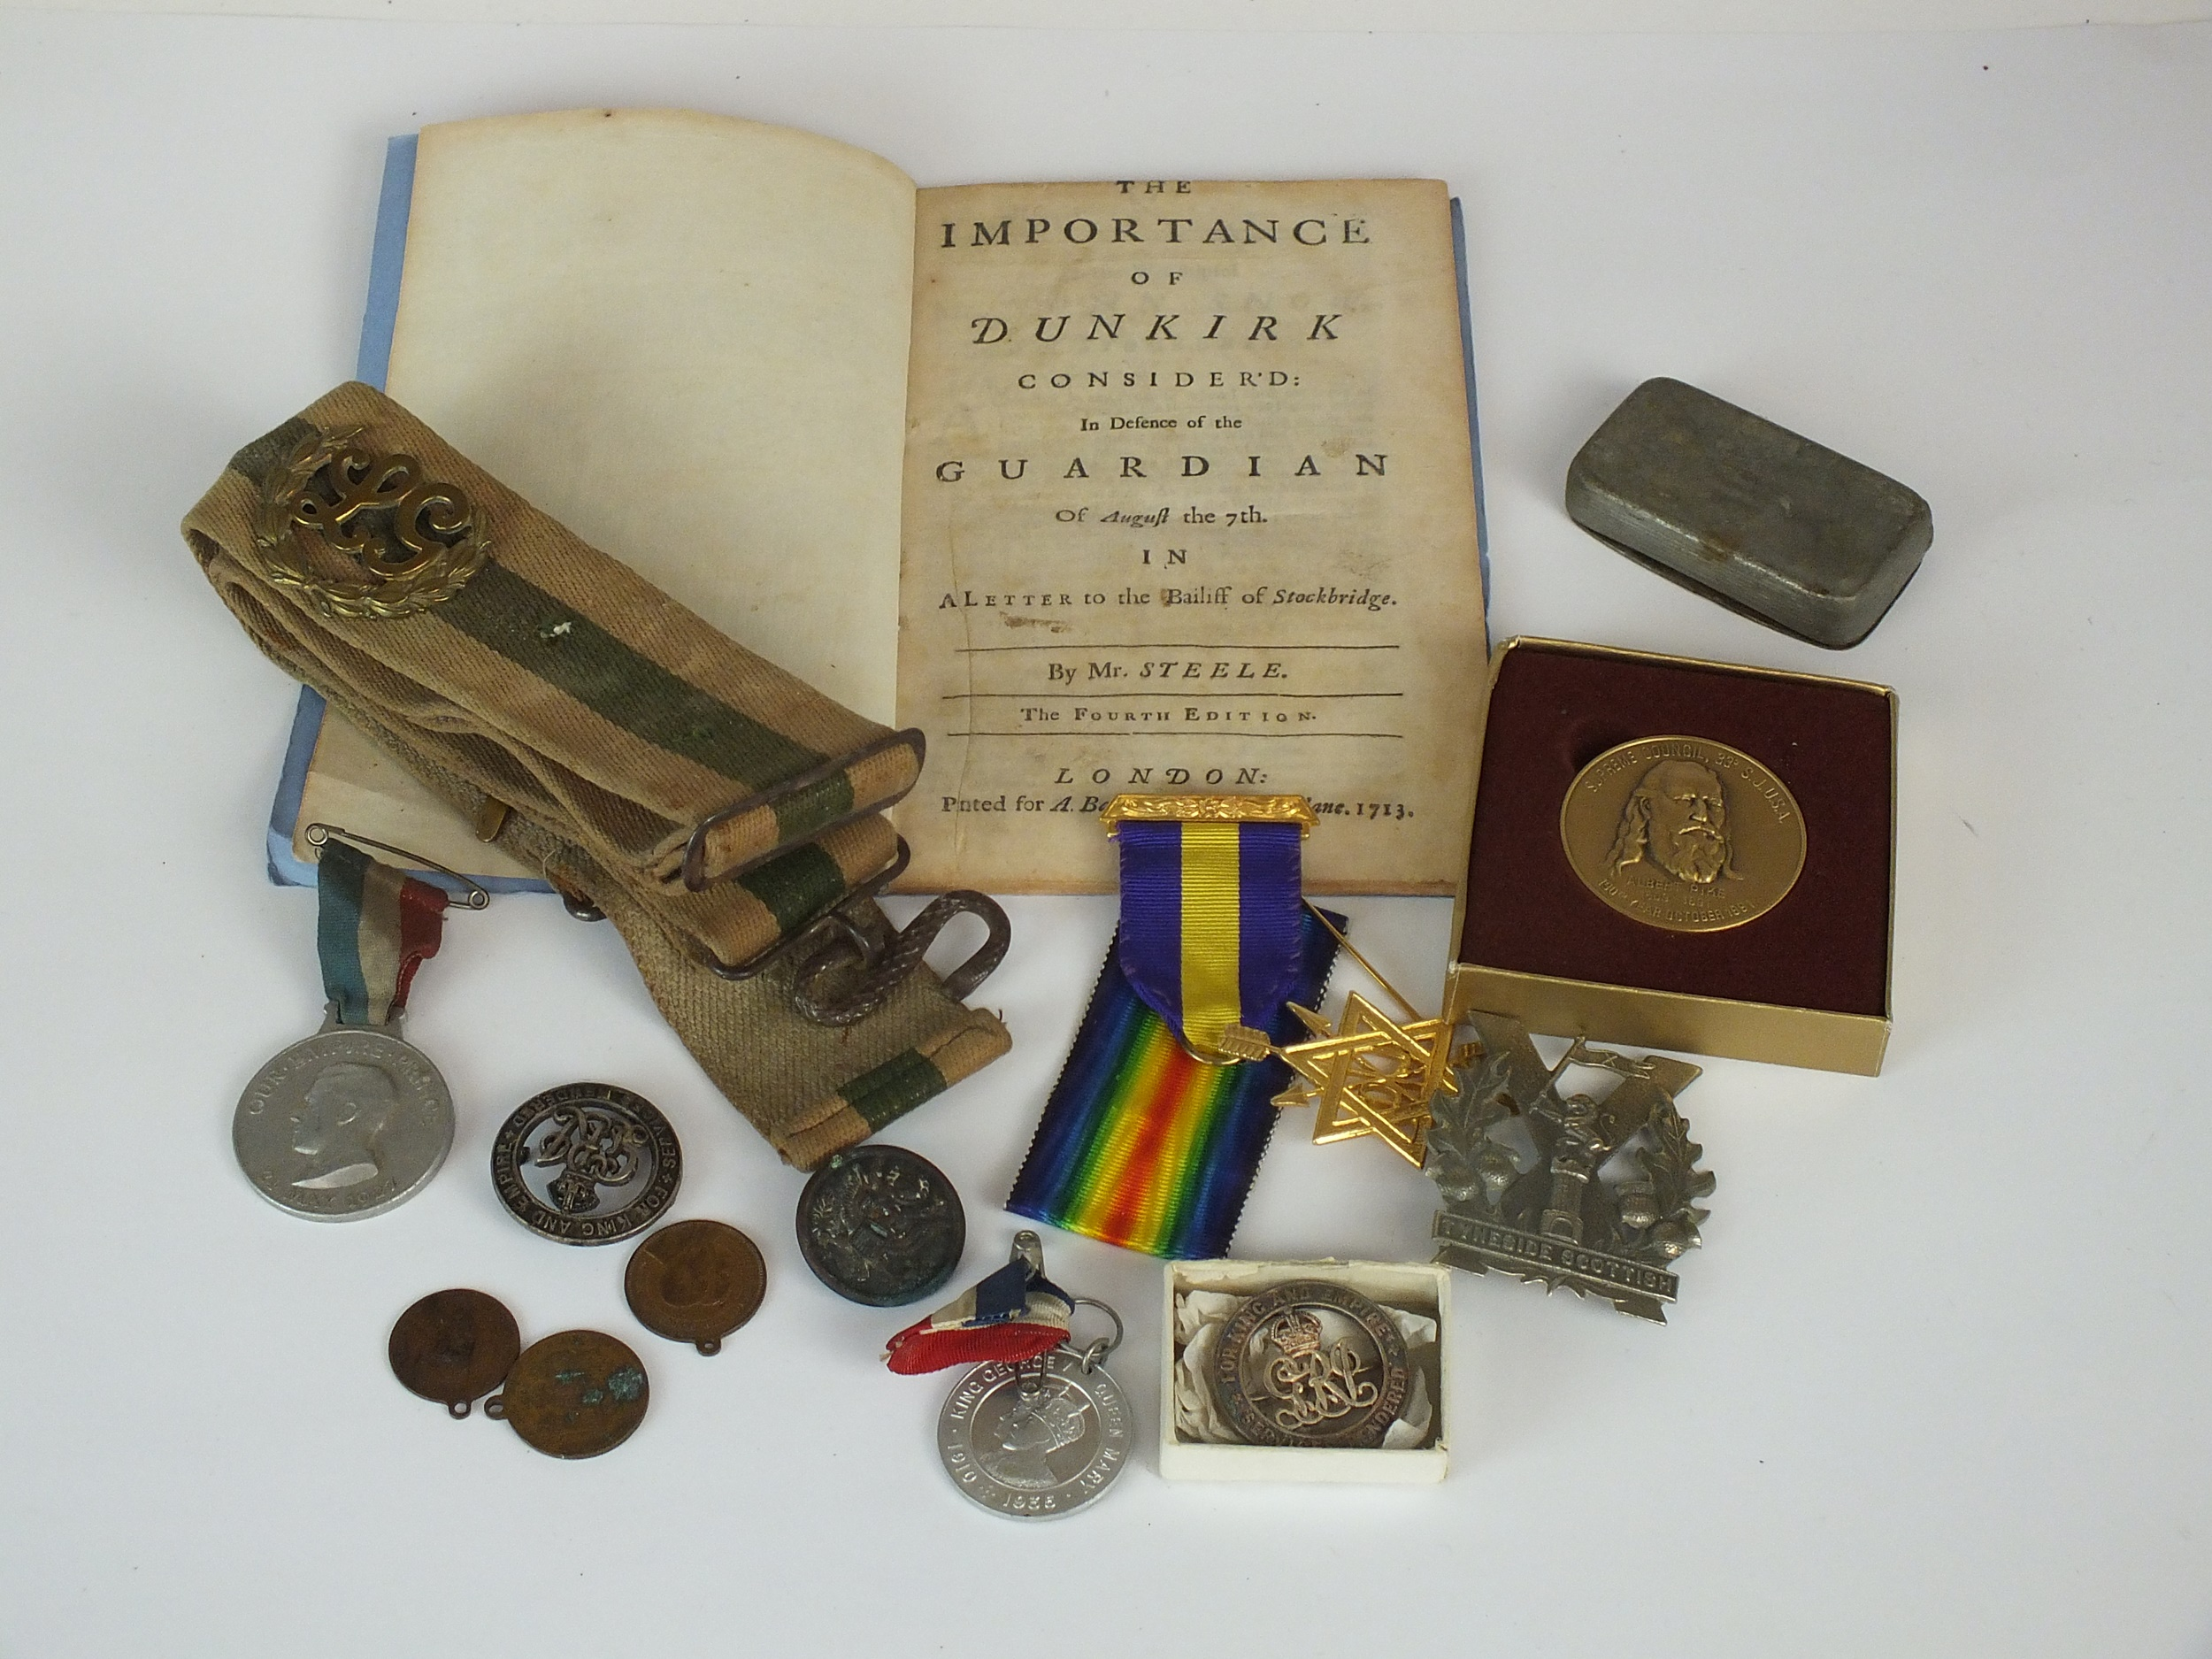 Miscellaneous assortment of medals and militaria